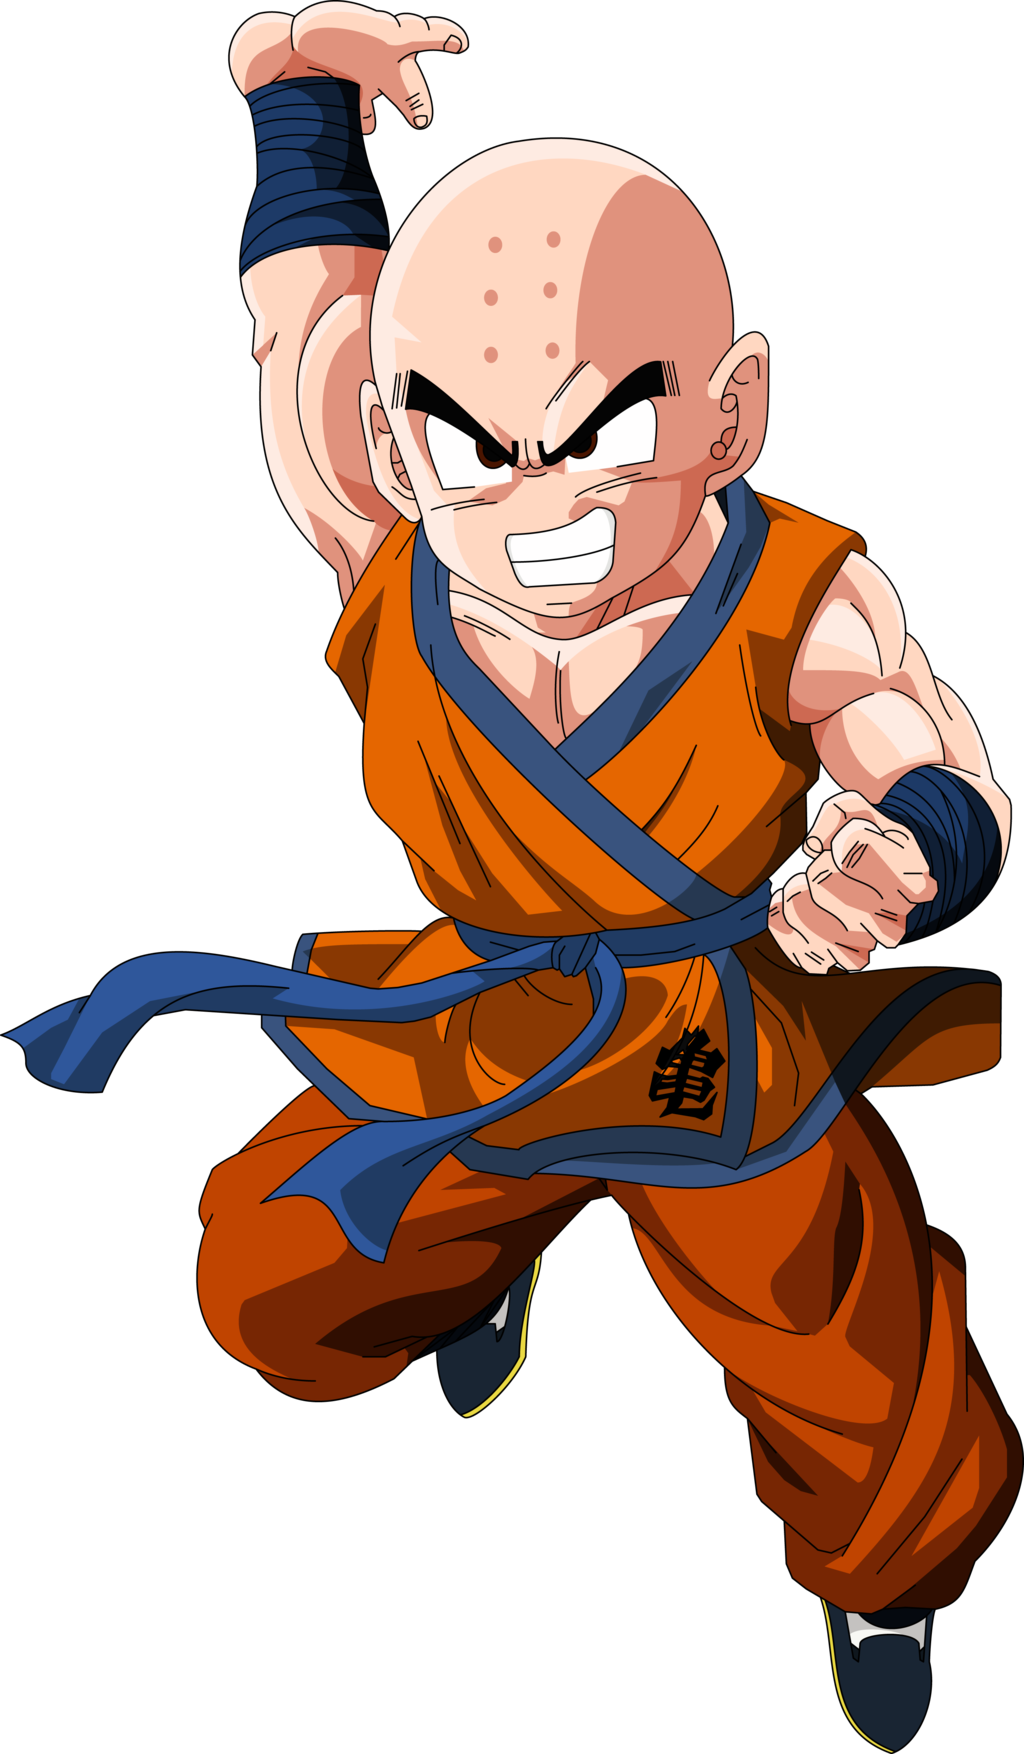 Krillin (Dragon Ball)